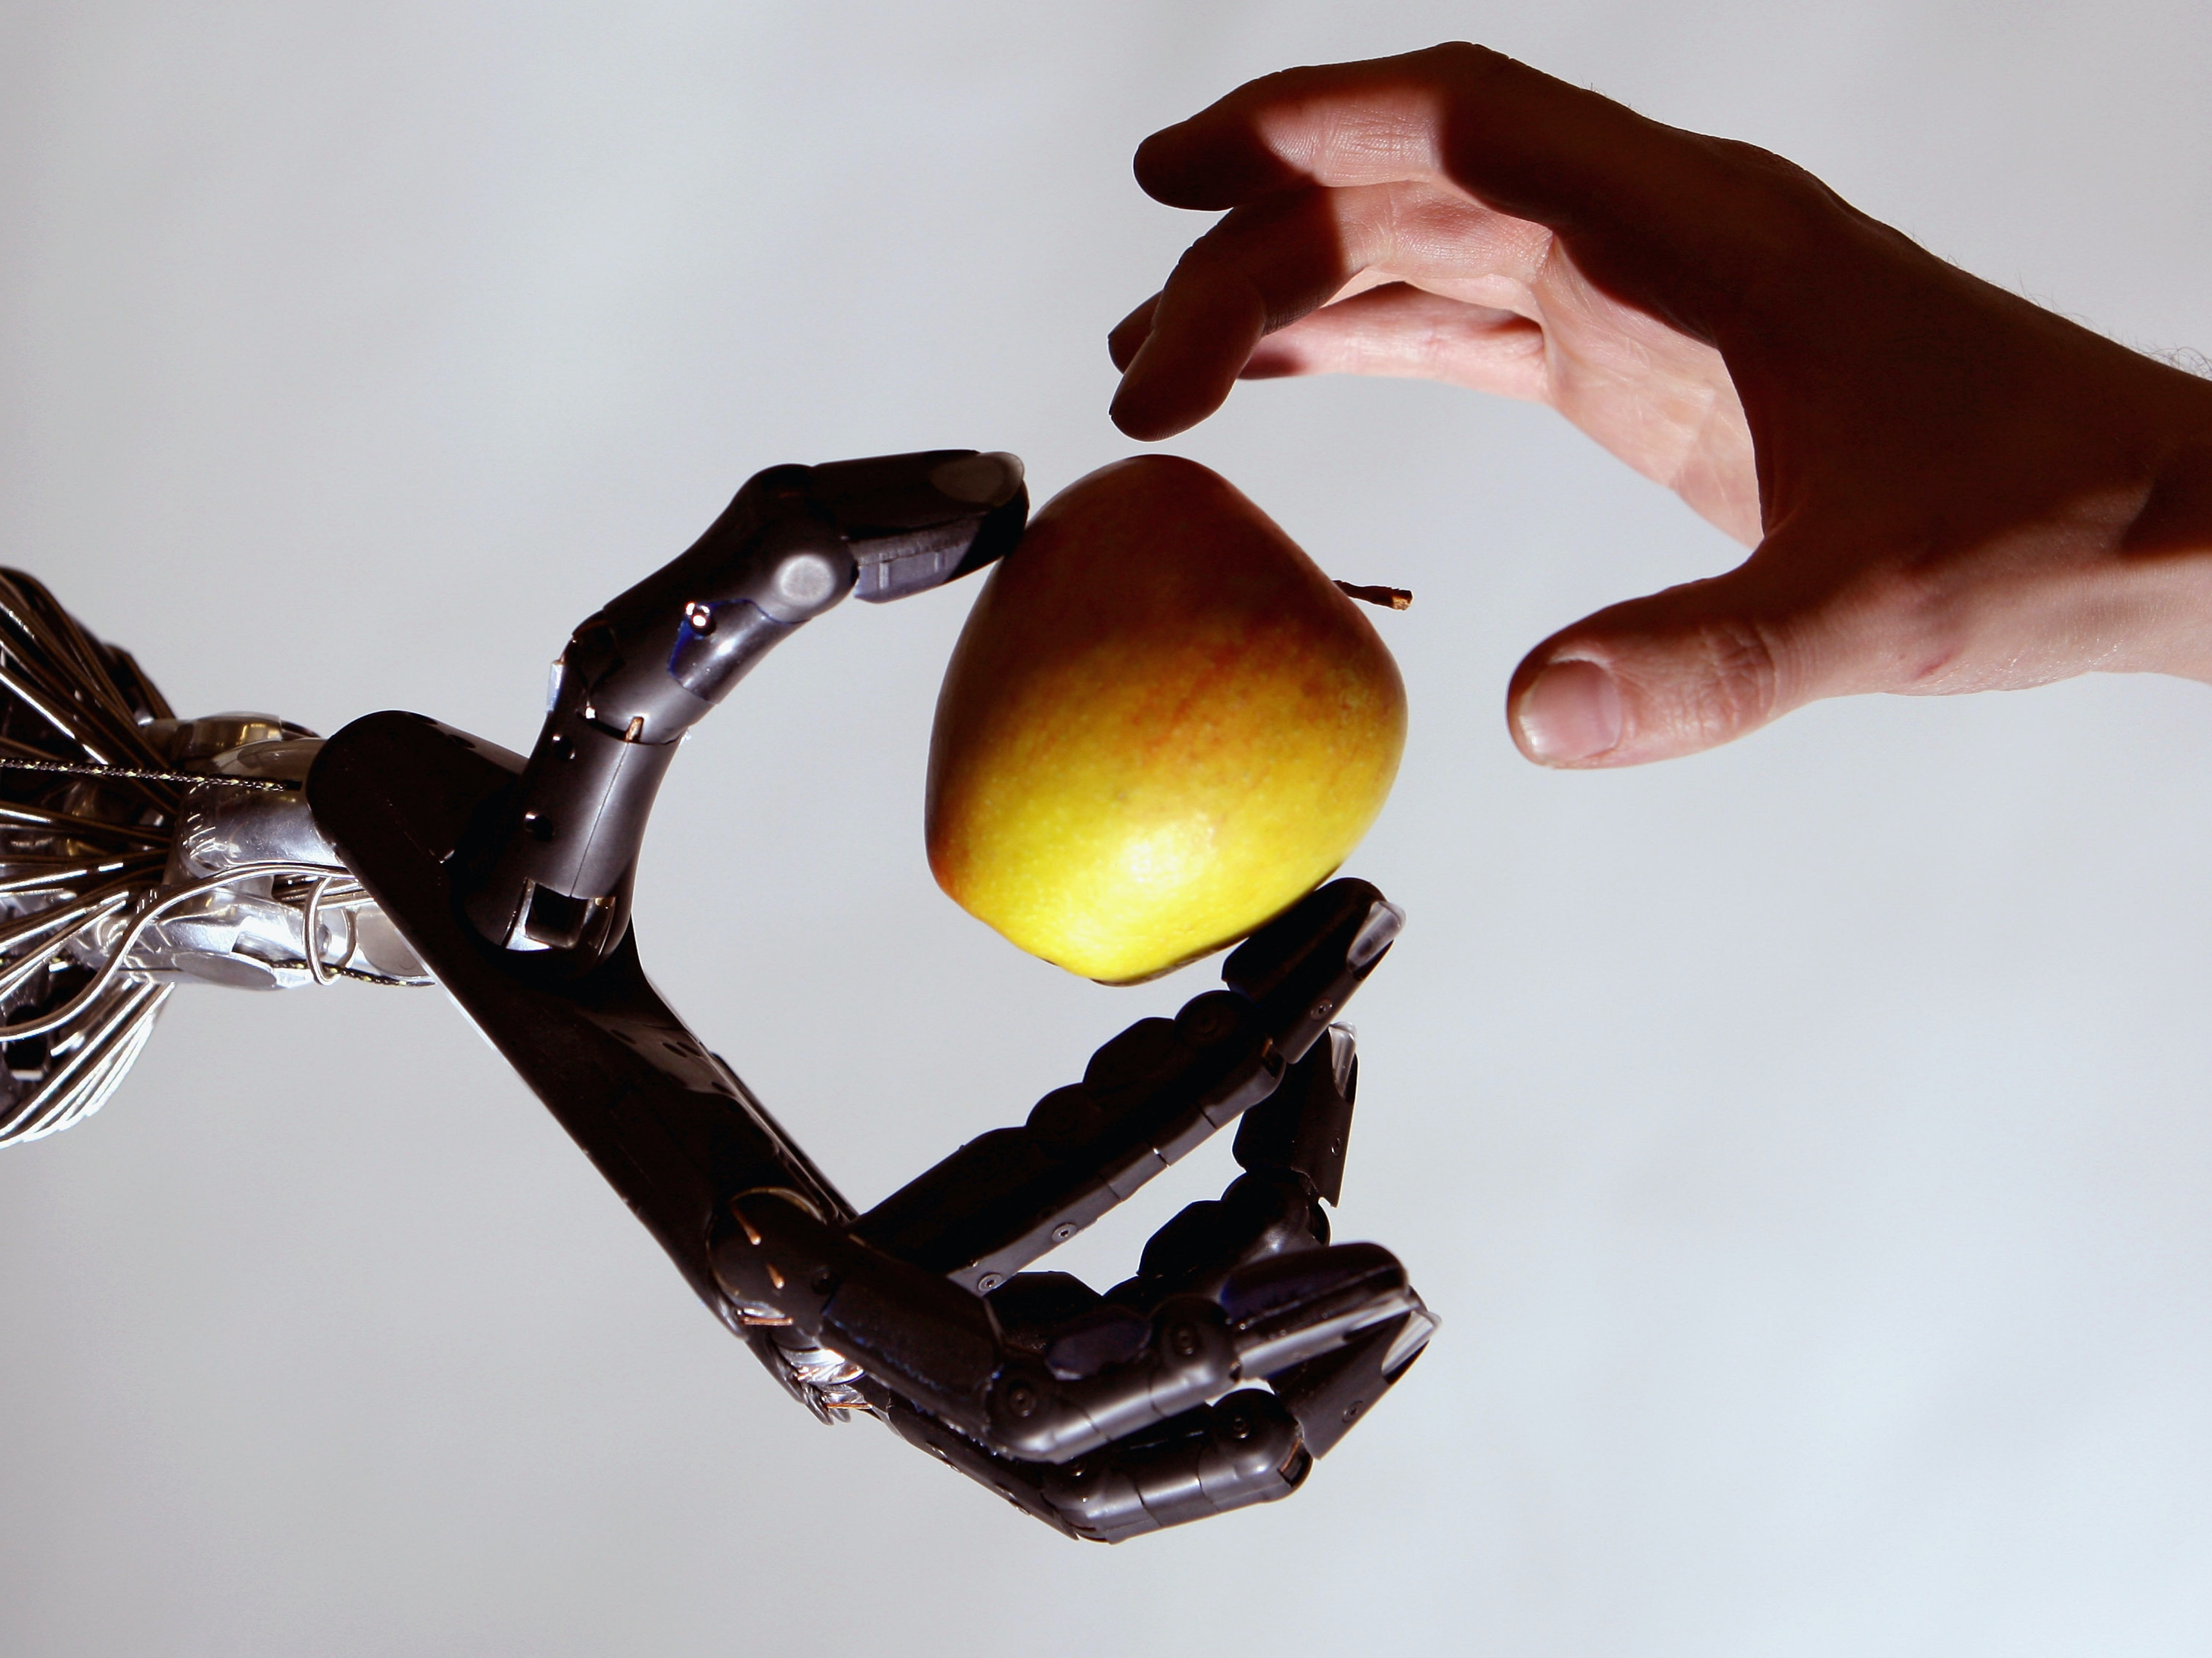 Robots Need Our Quantified Trust and They Don't Have It